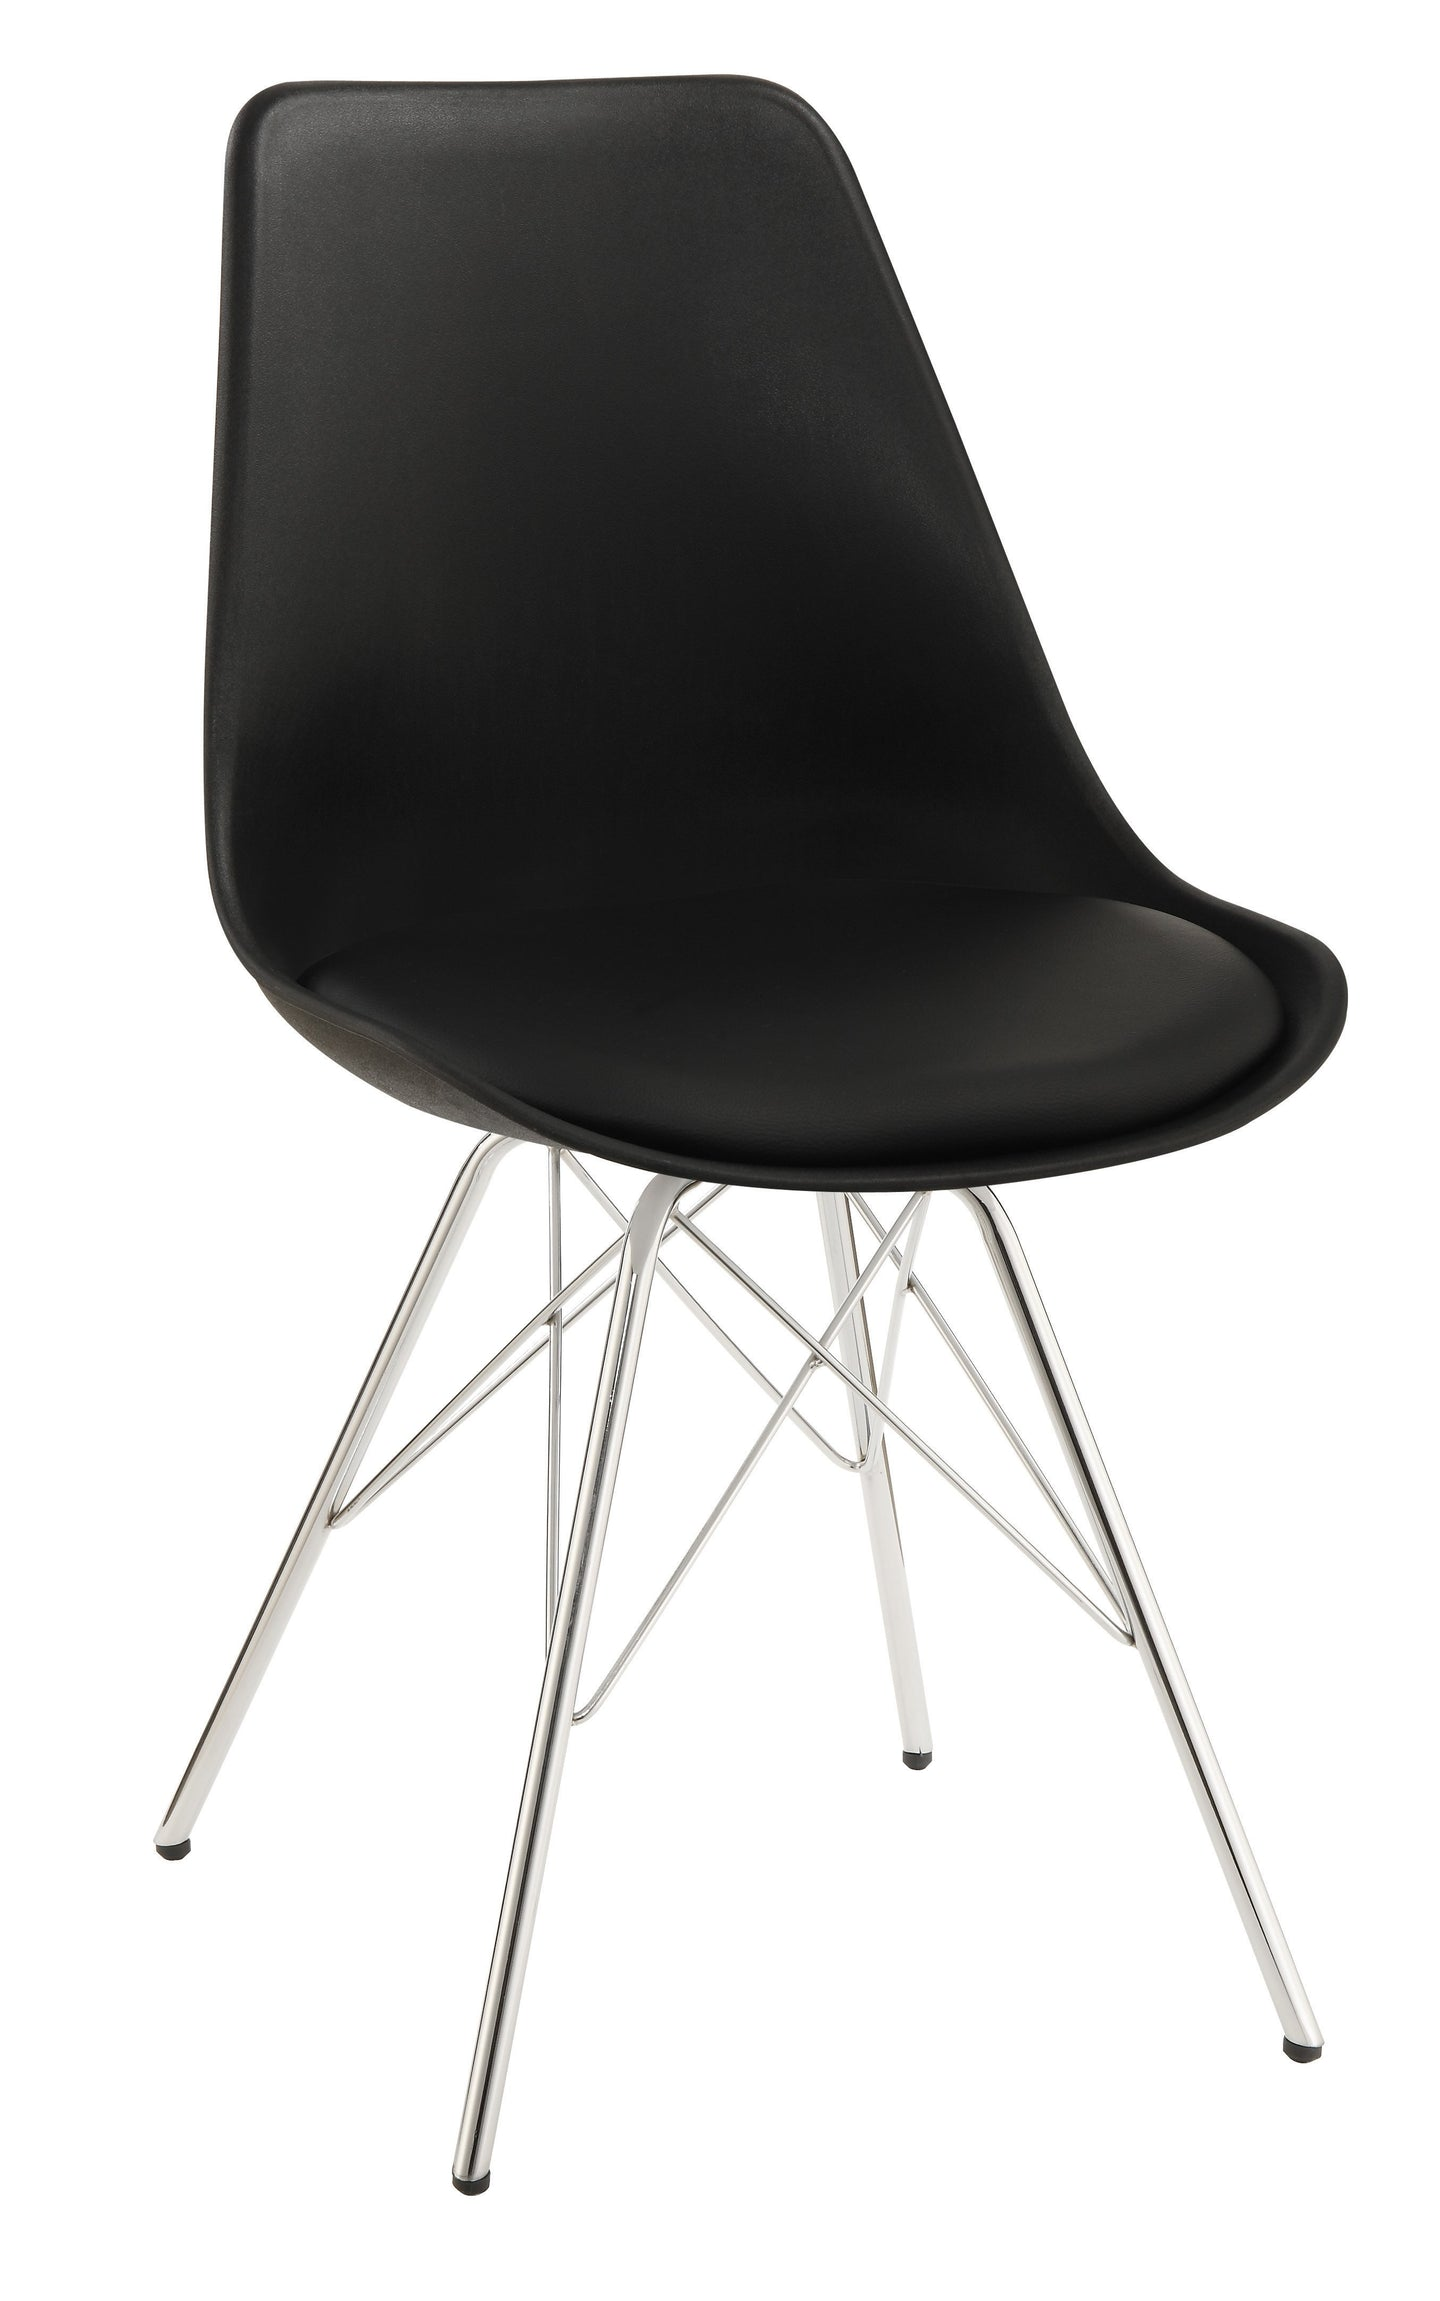 Homy Living Lowry Black Finish 2 Piece Dining Side Chair